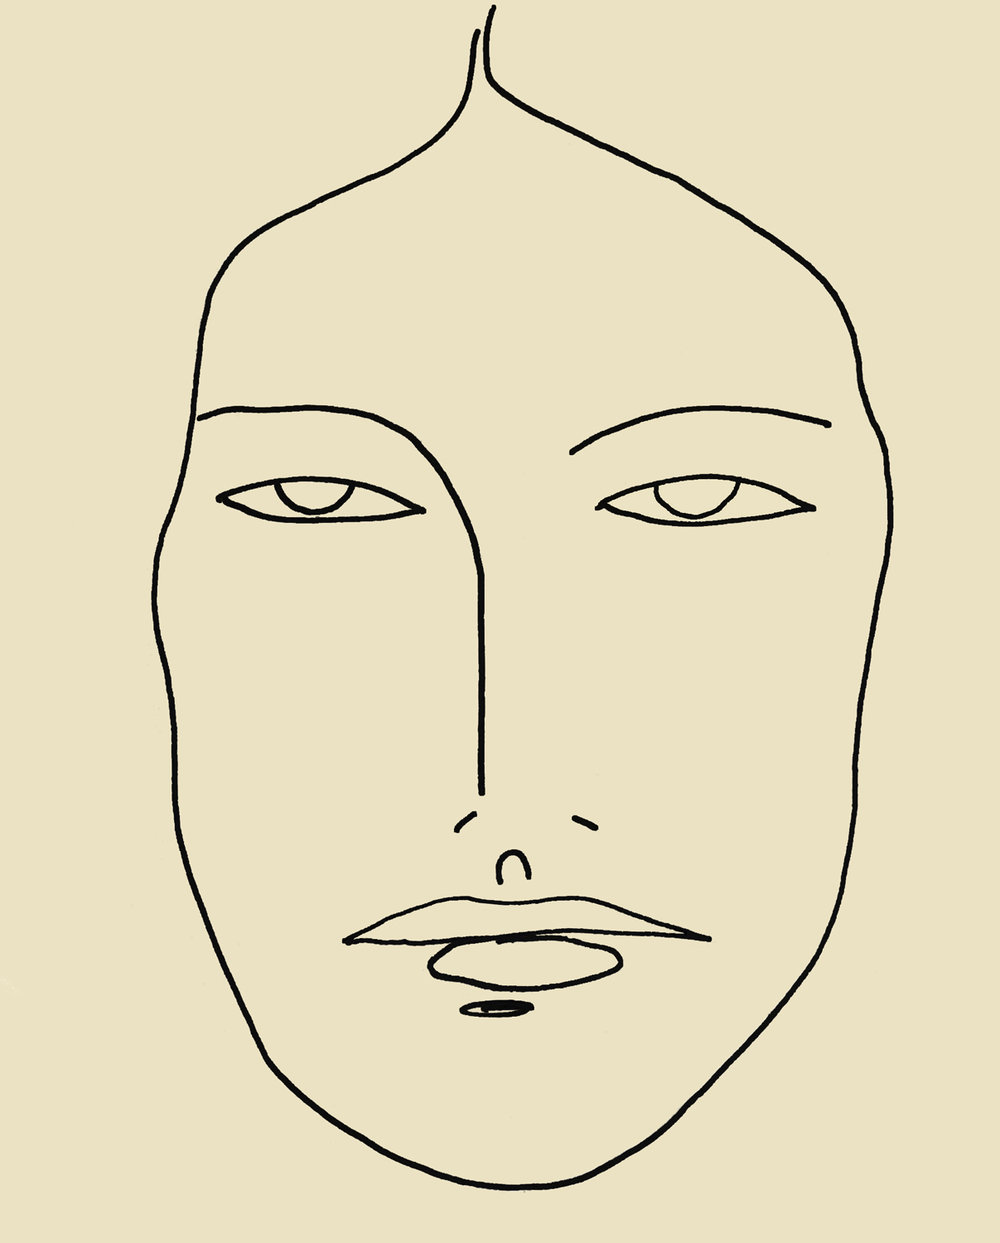 Line Art of Human Being Face